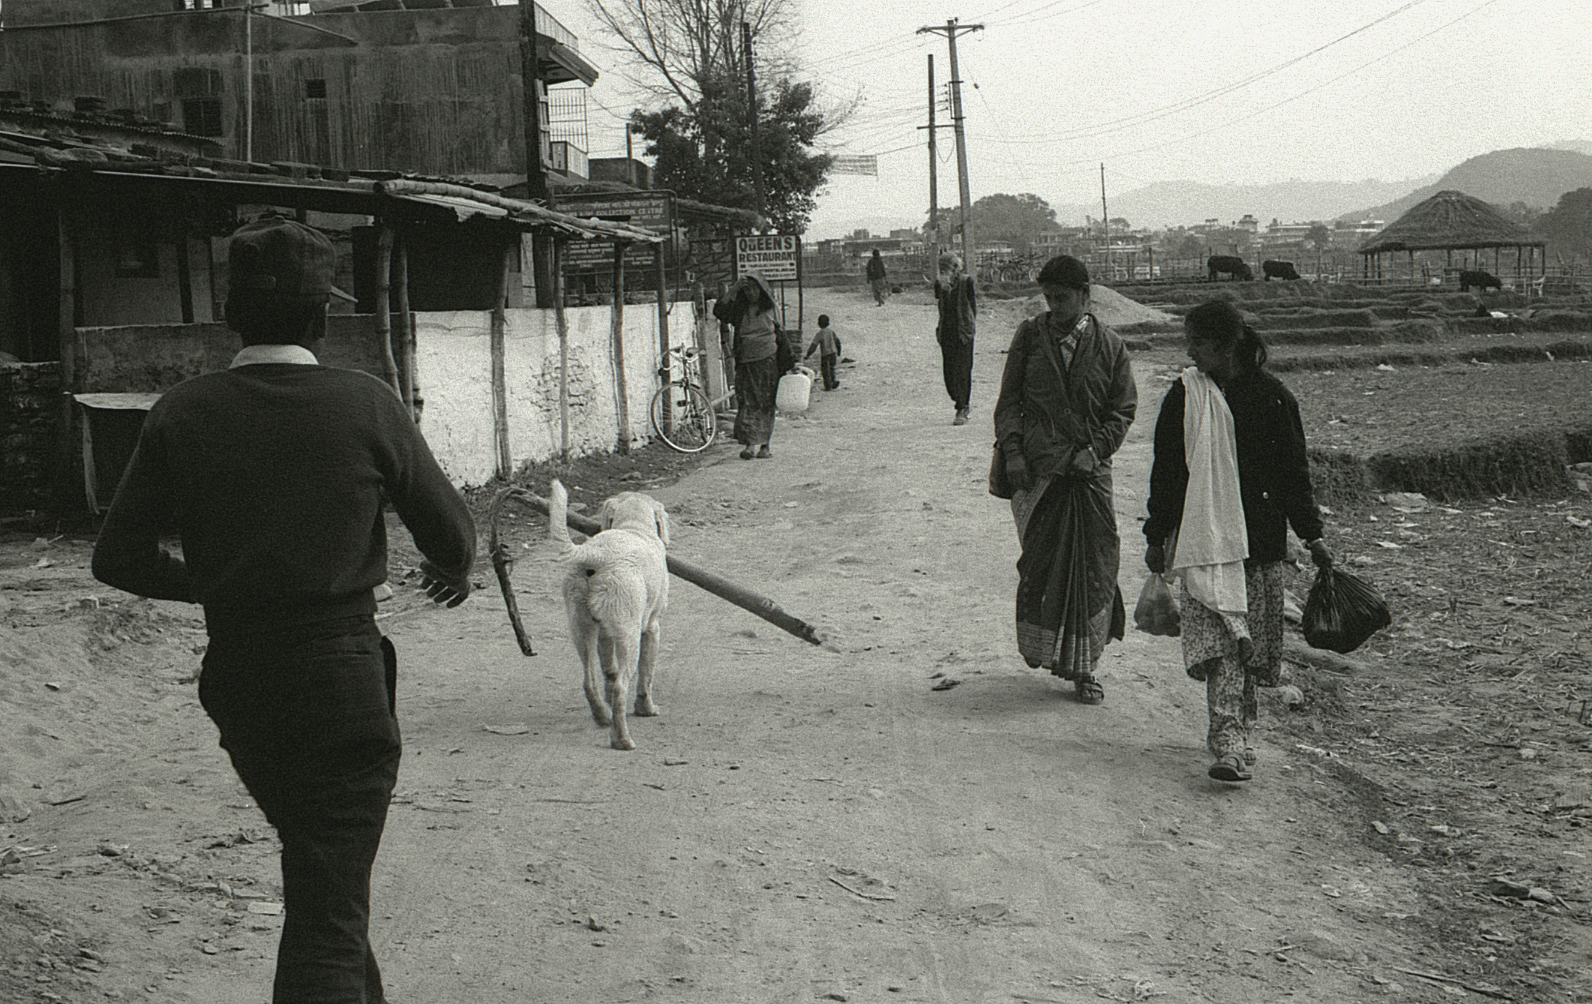 Pokhara, Nepal, where Orville became famous for his stick swimming.